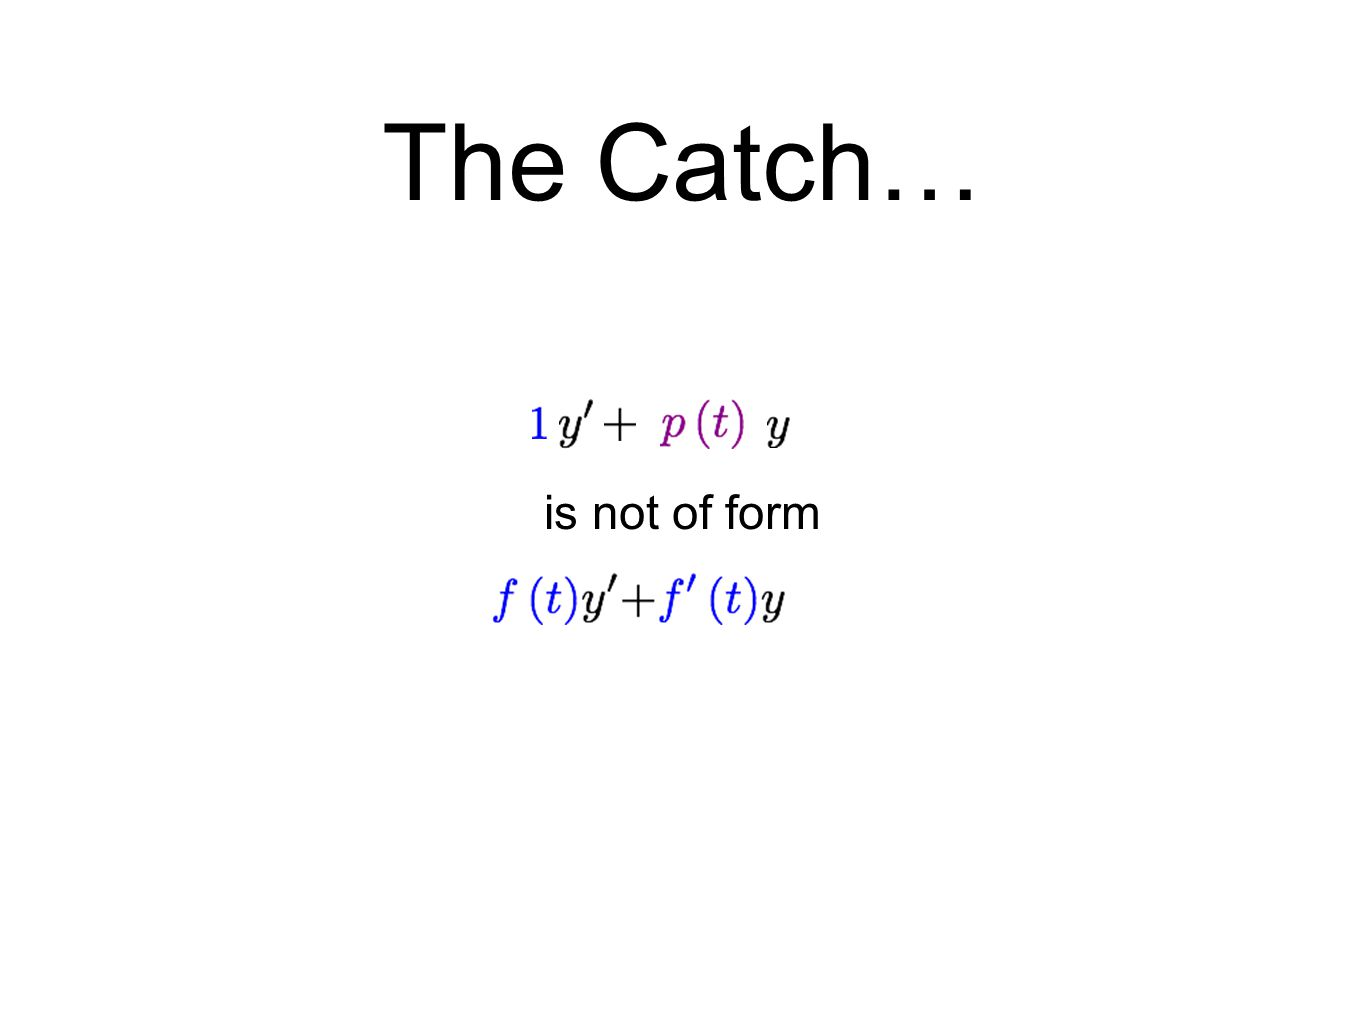 The Catch… is not of form